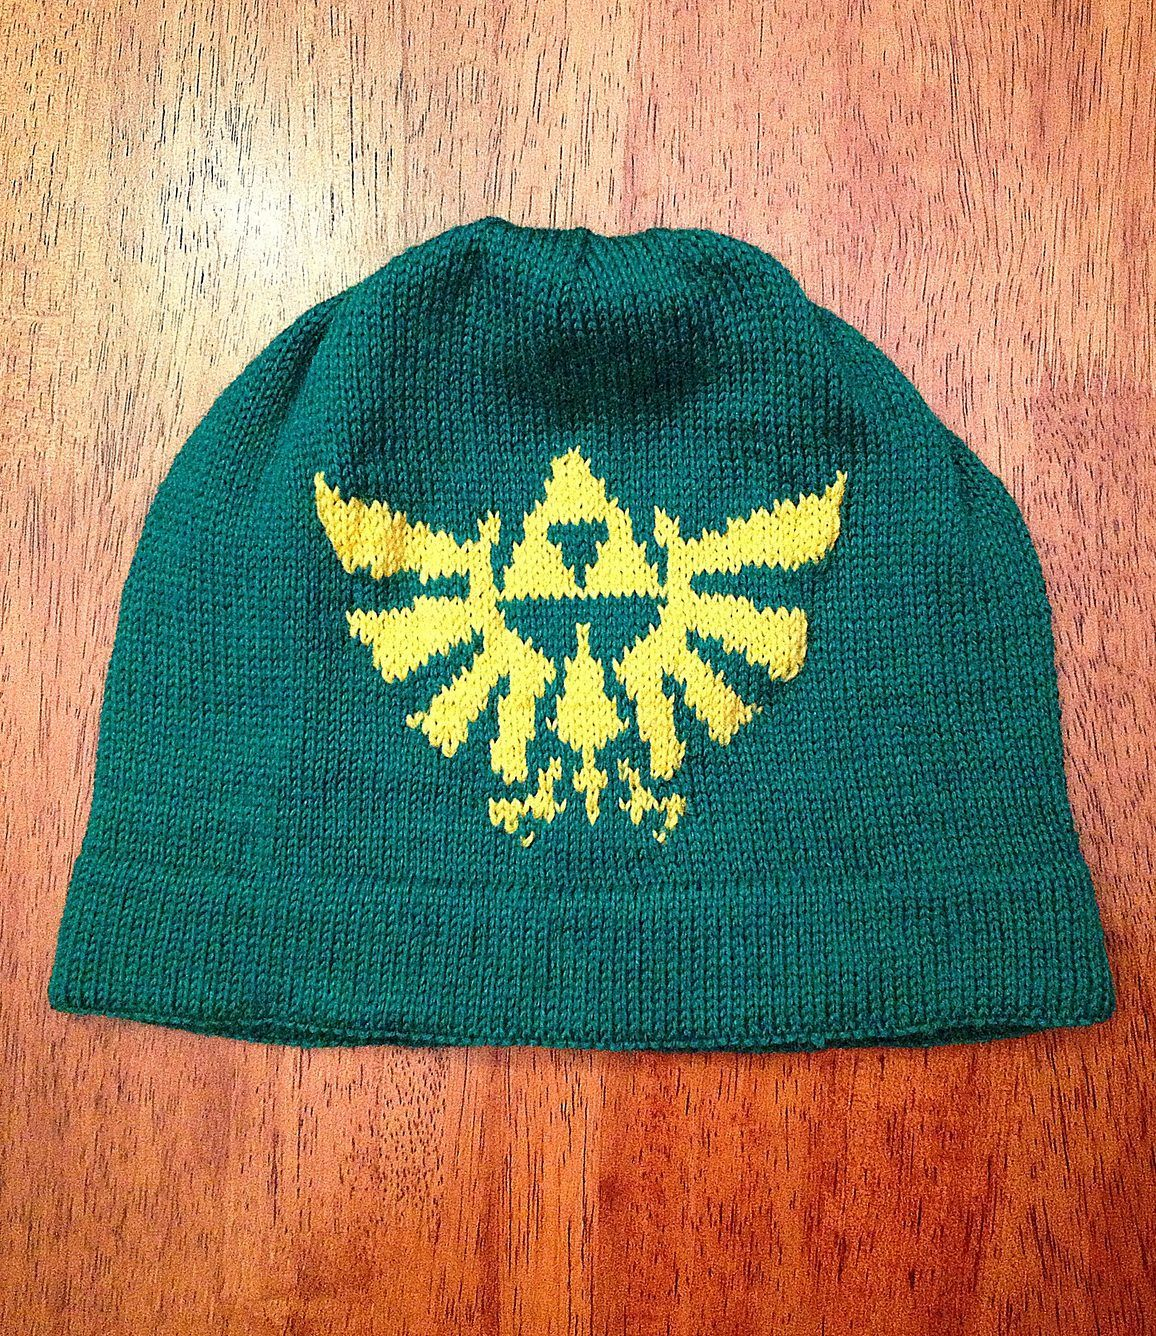 Gaming Knitting Patterns | Knitting patterns, Patterns and Knit patterns